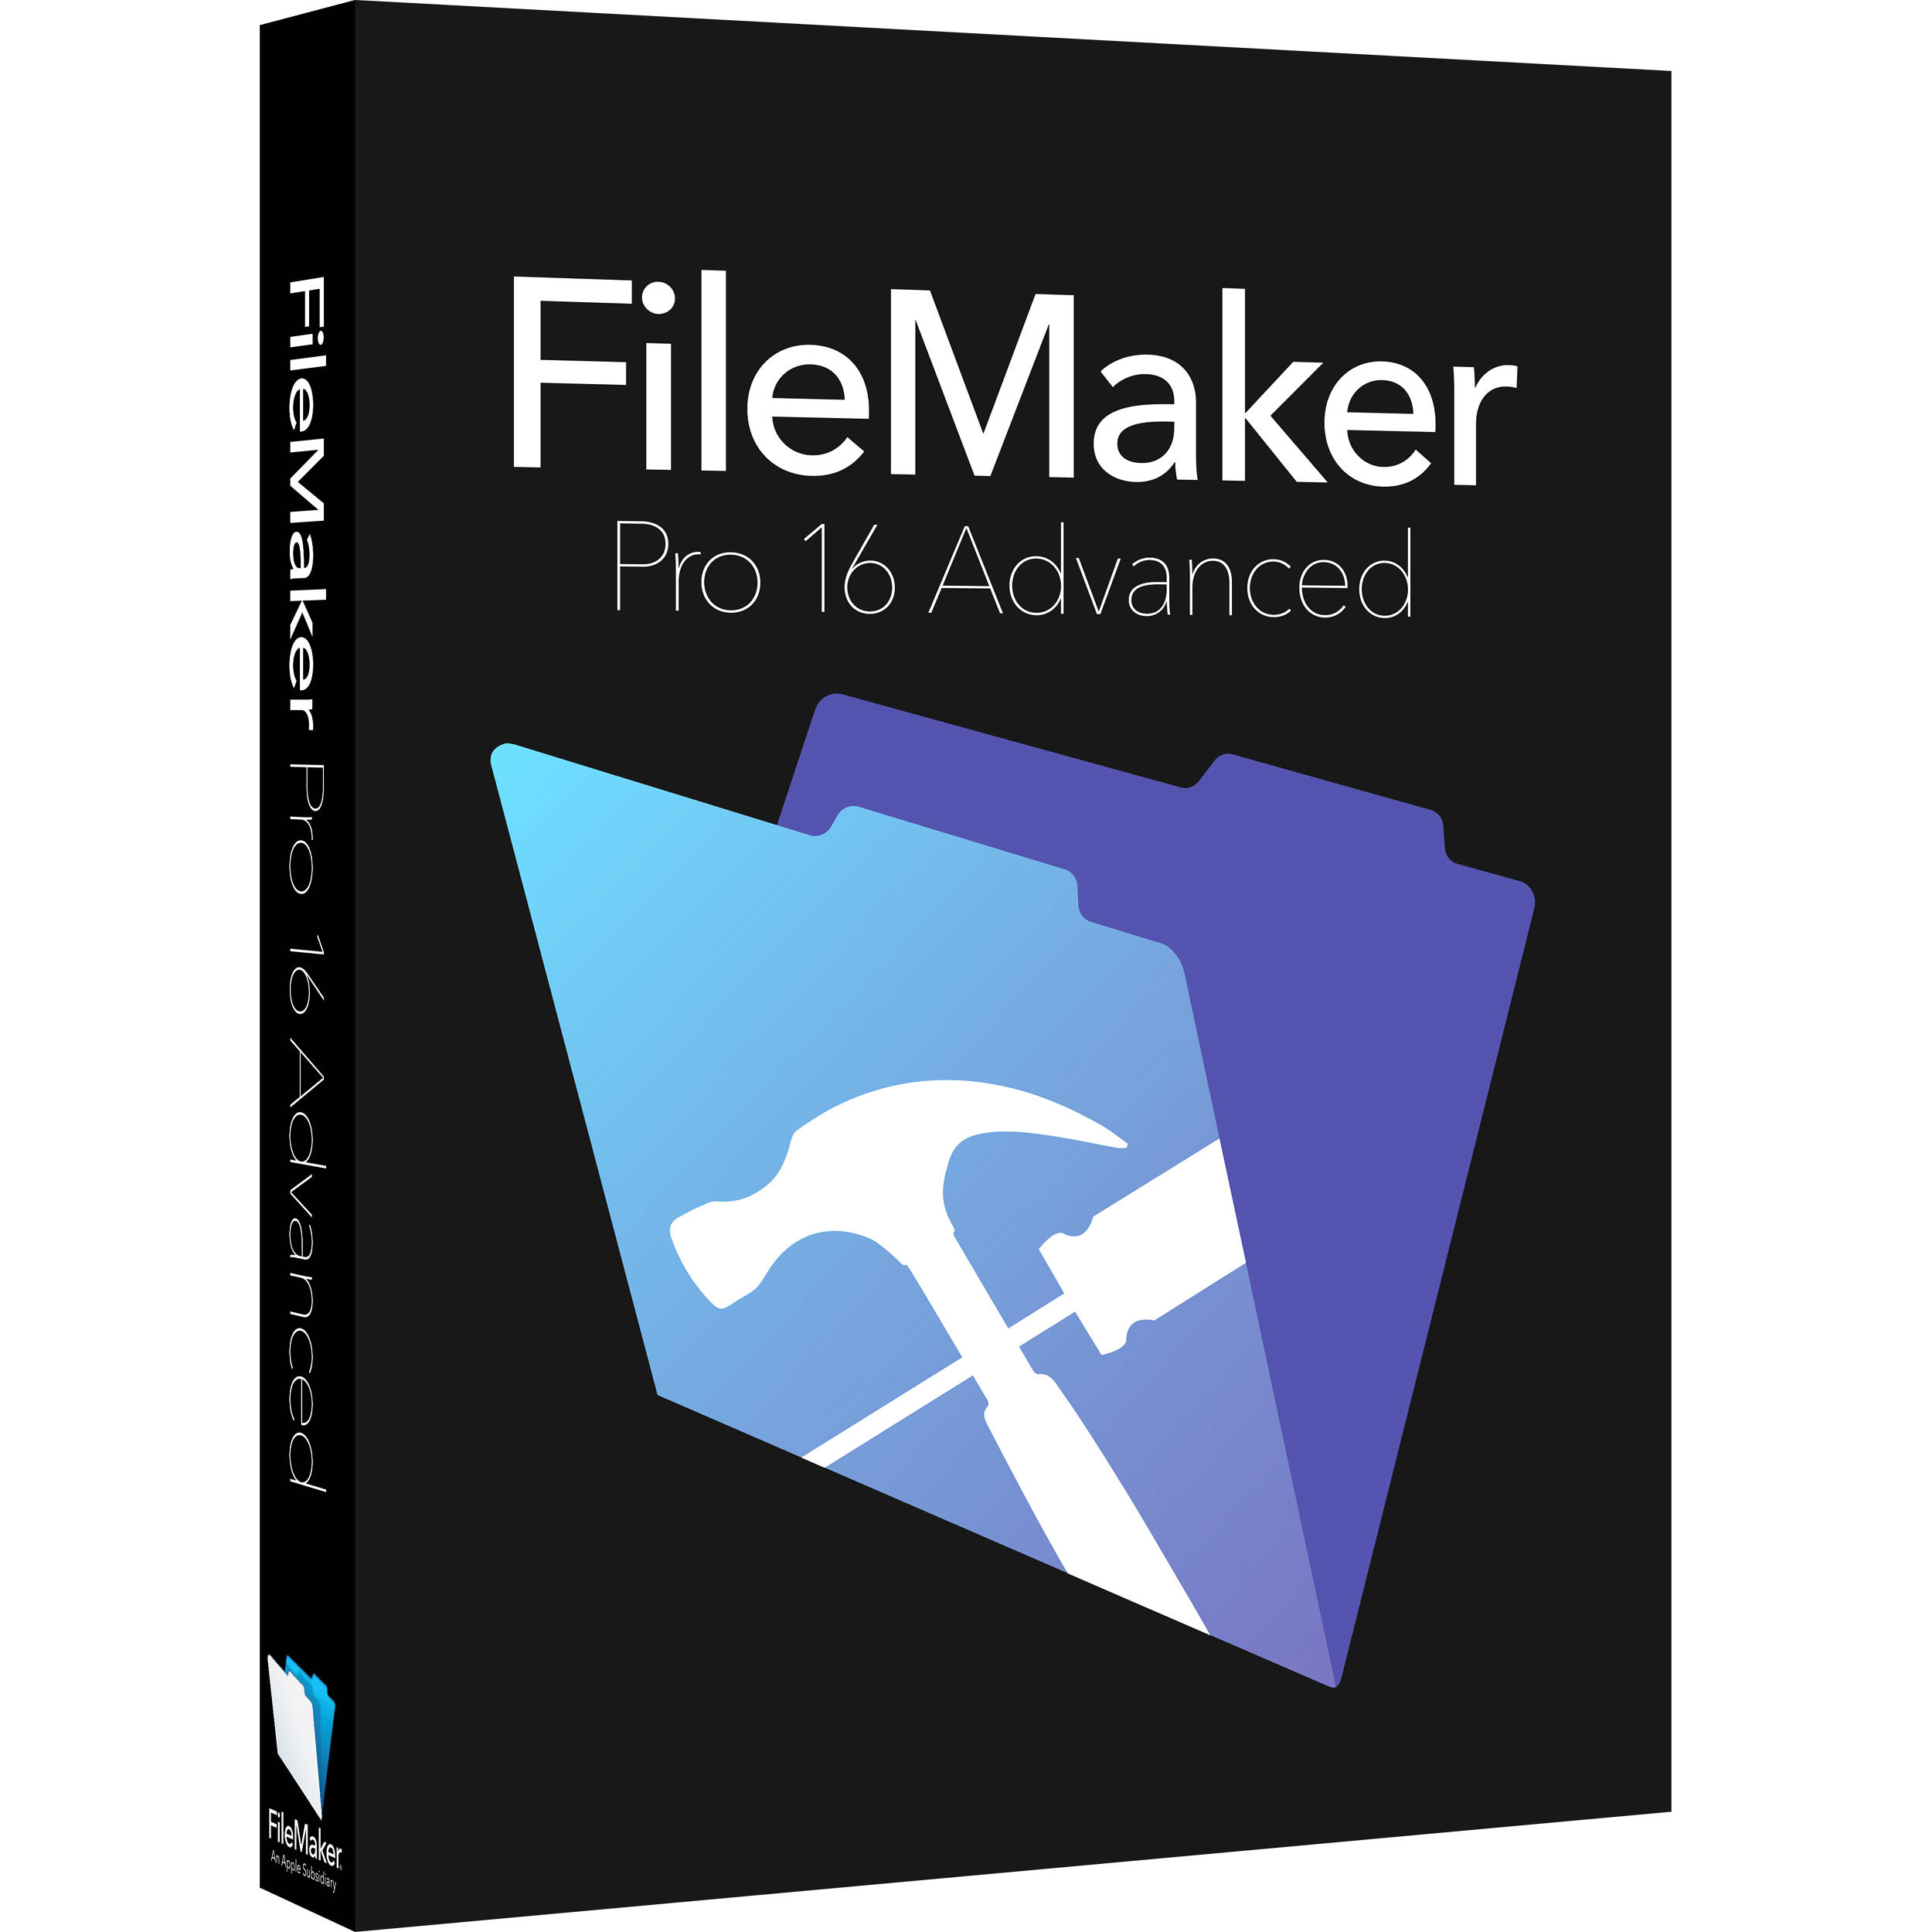 filemaker pro 16 upgrade requirements